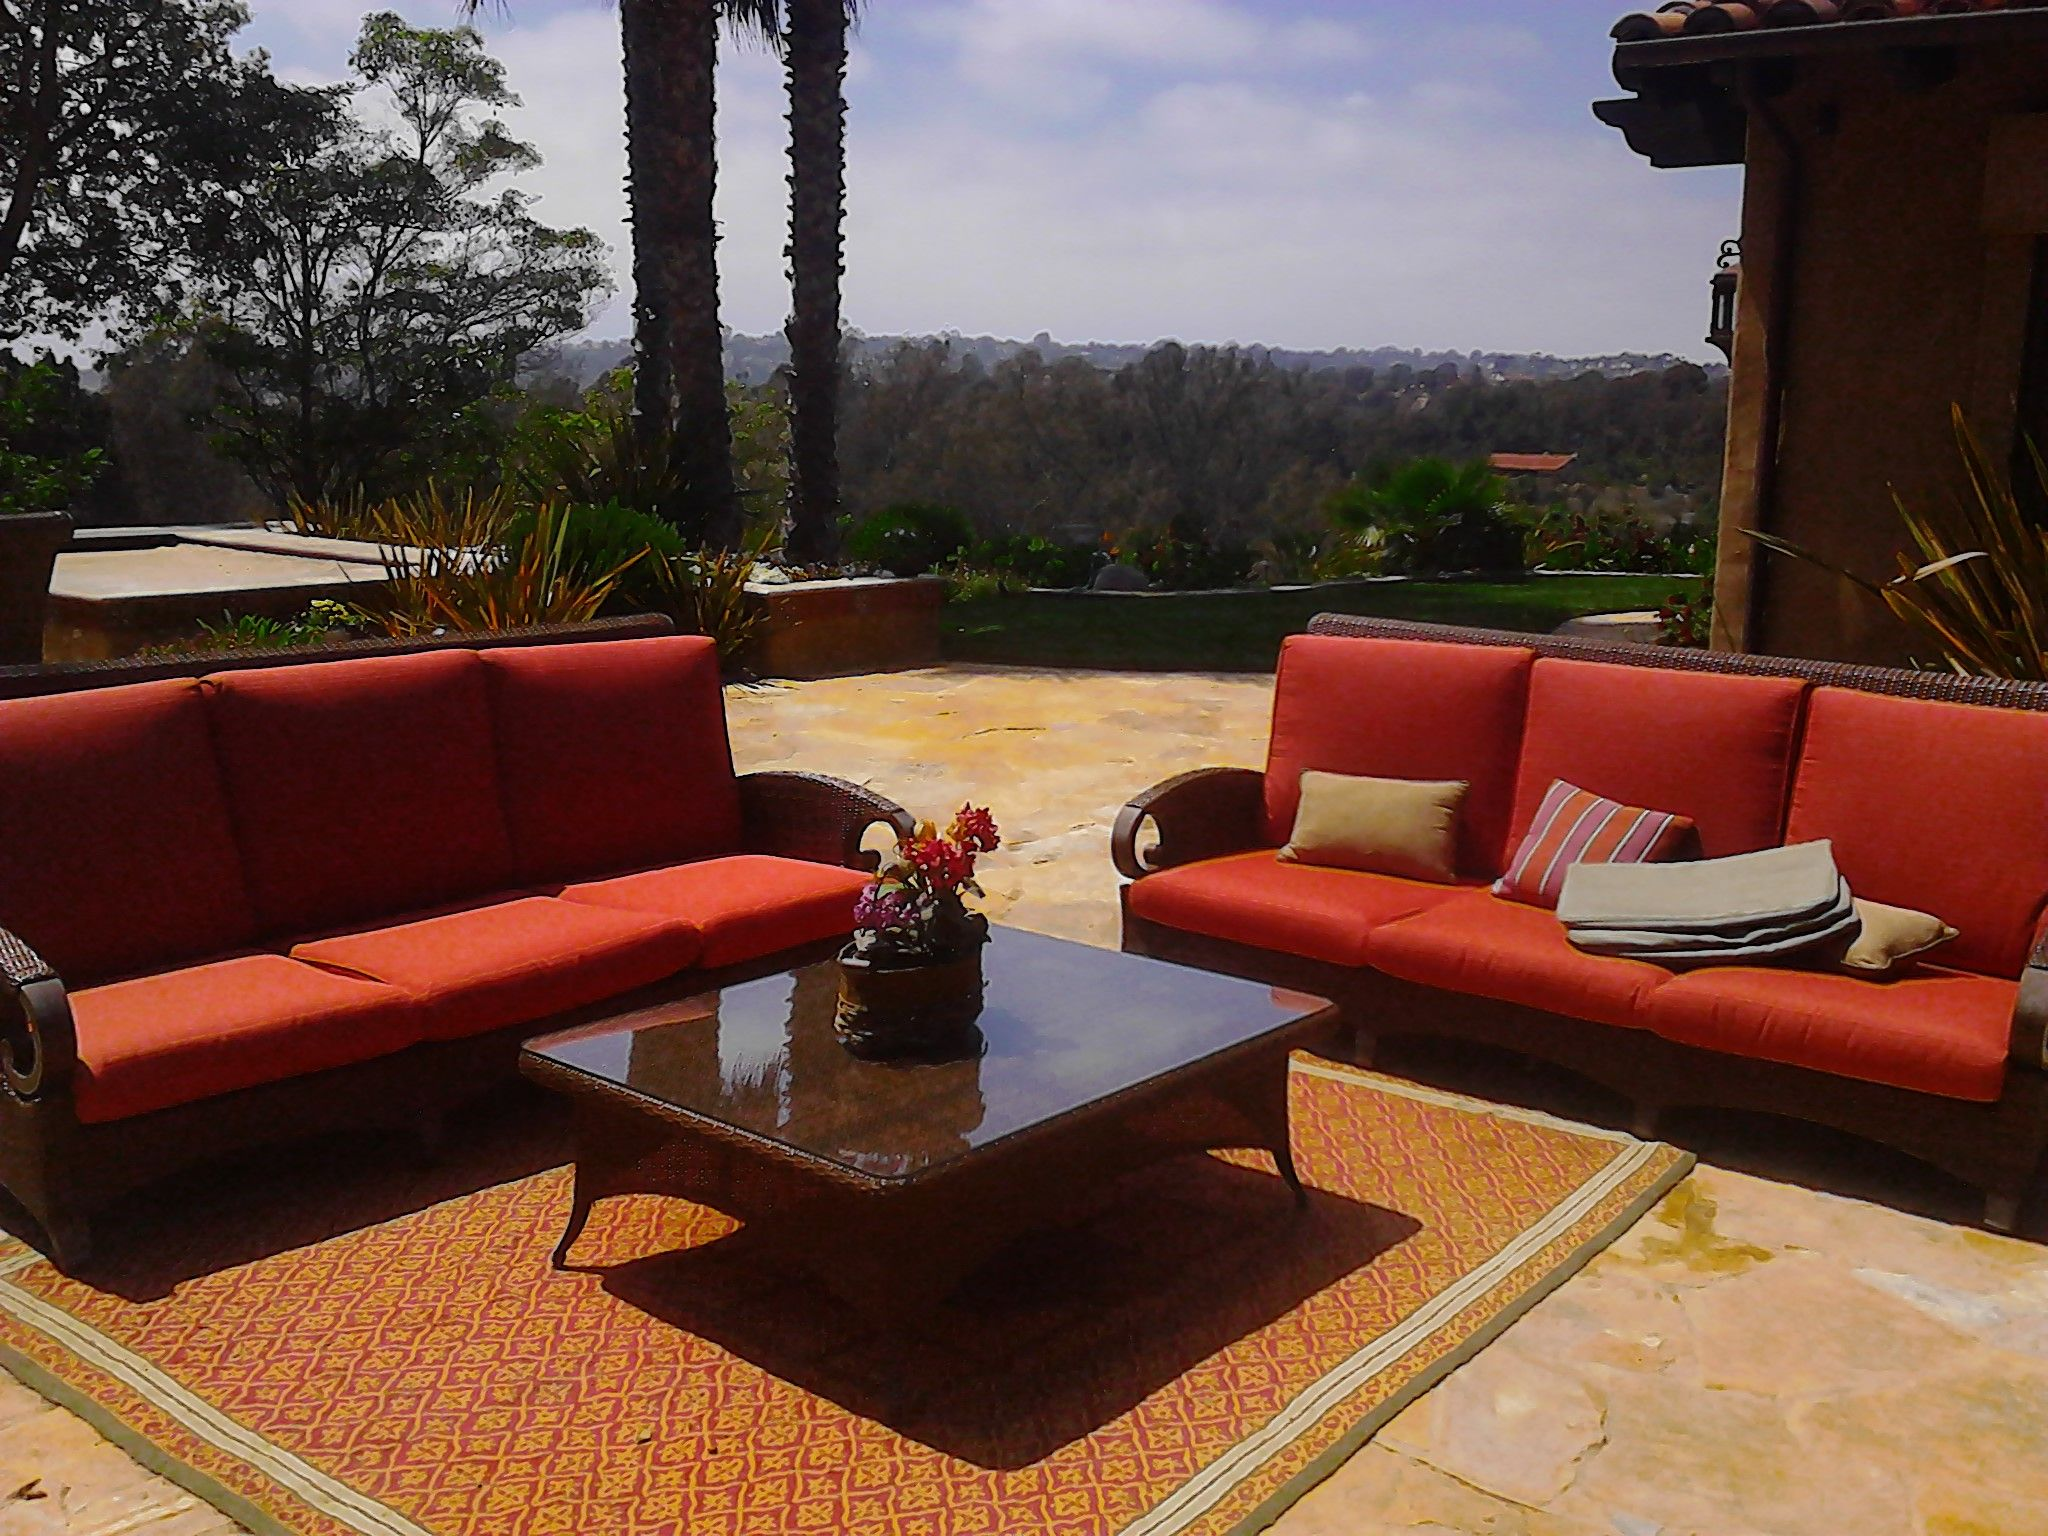 Outdoor living with a view made much more fun with custom made